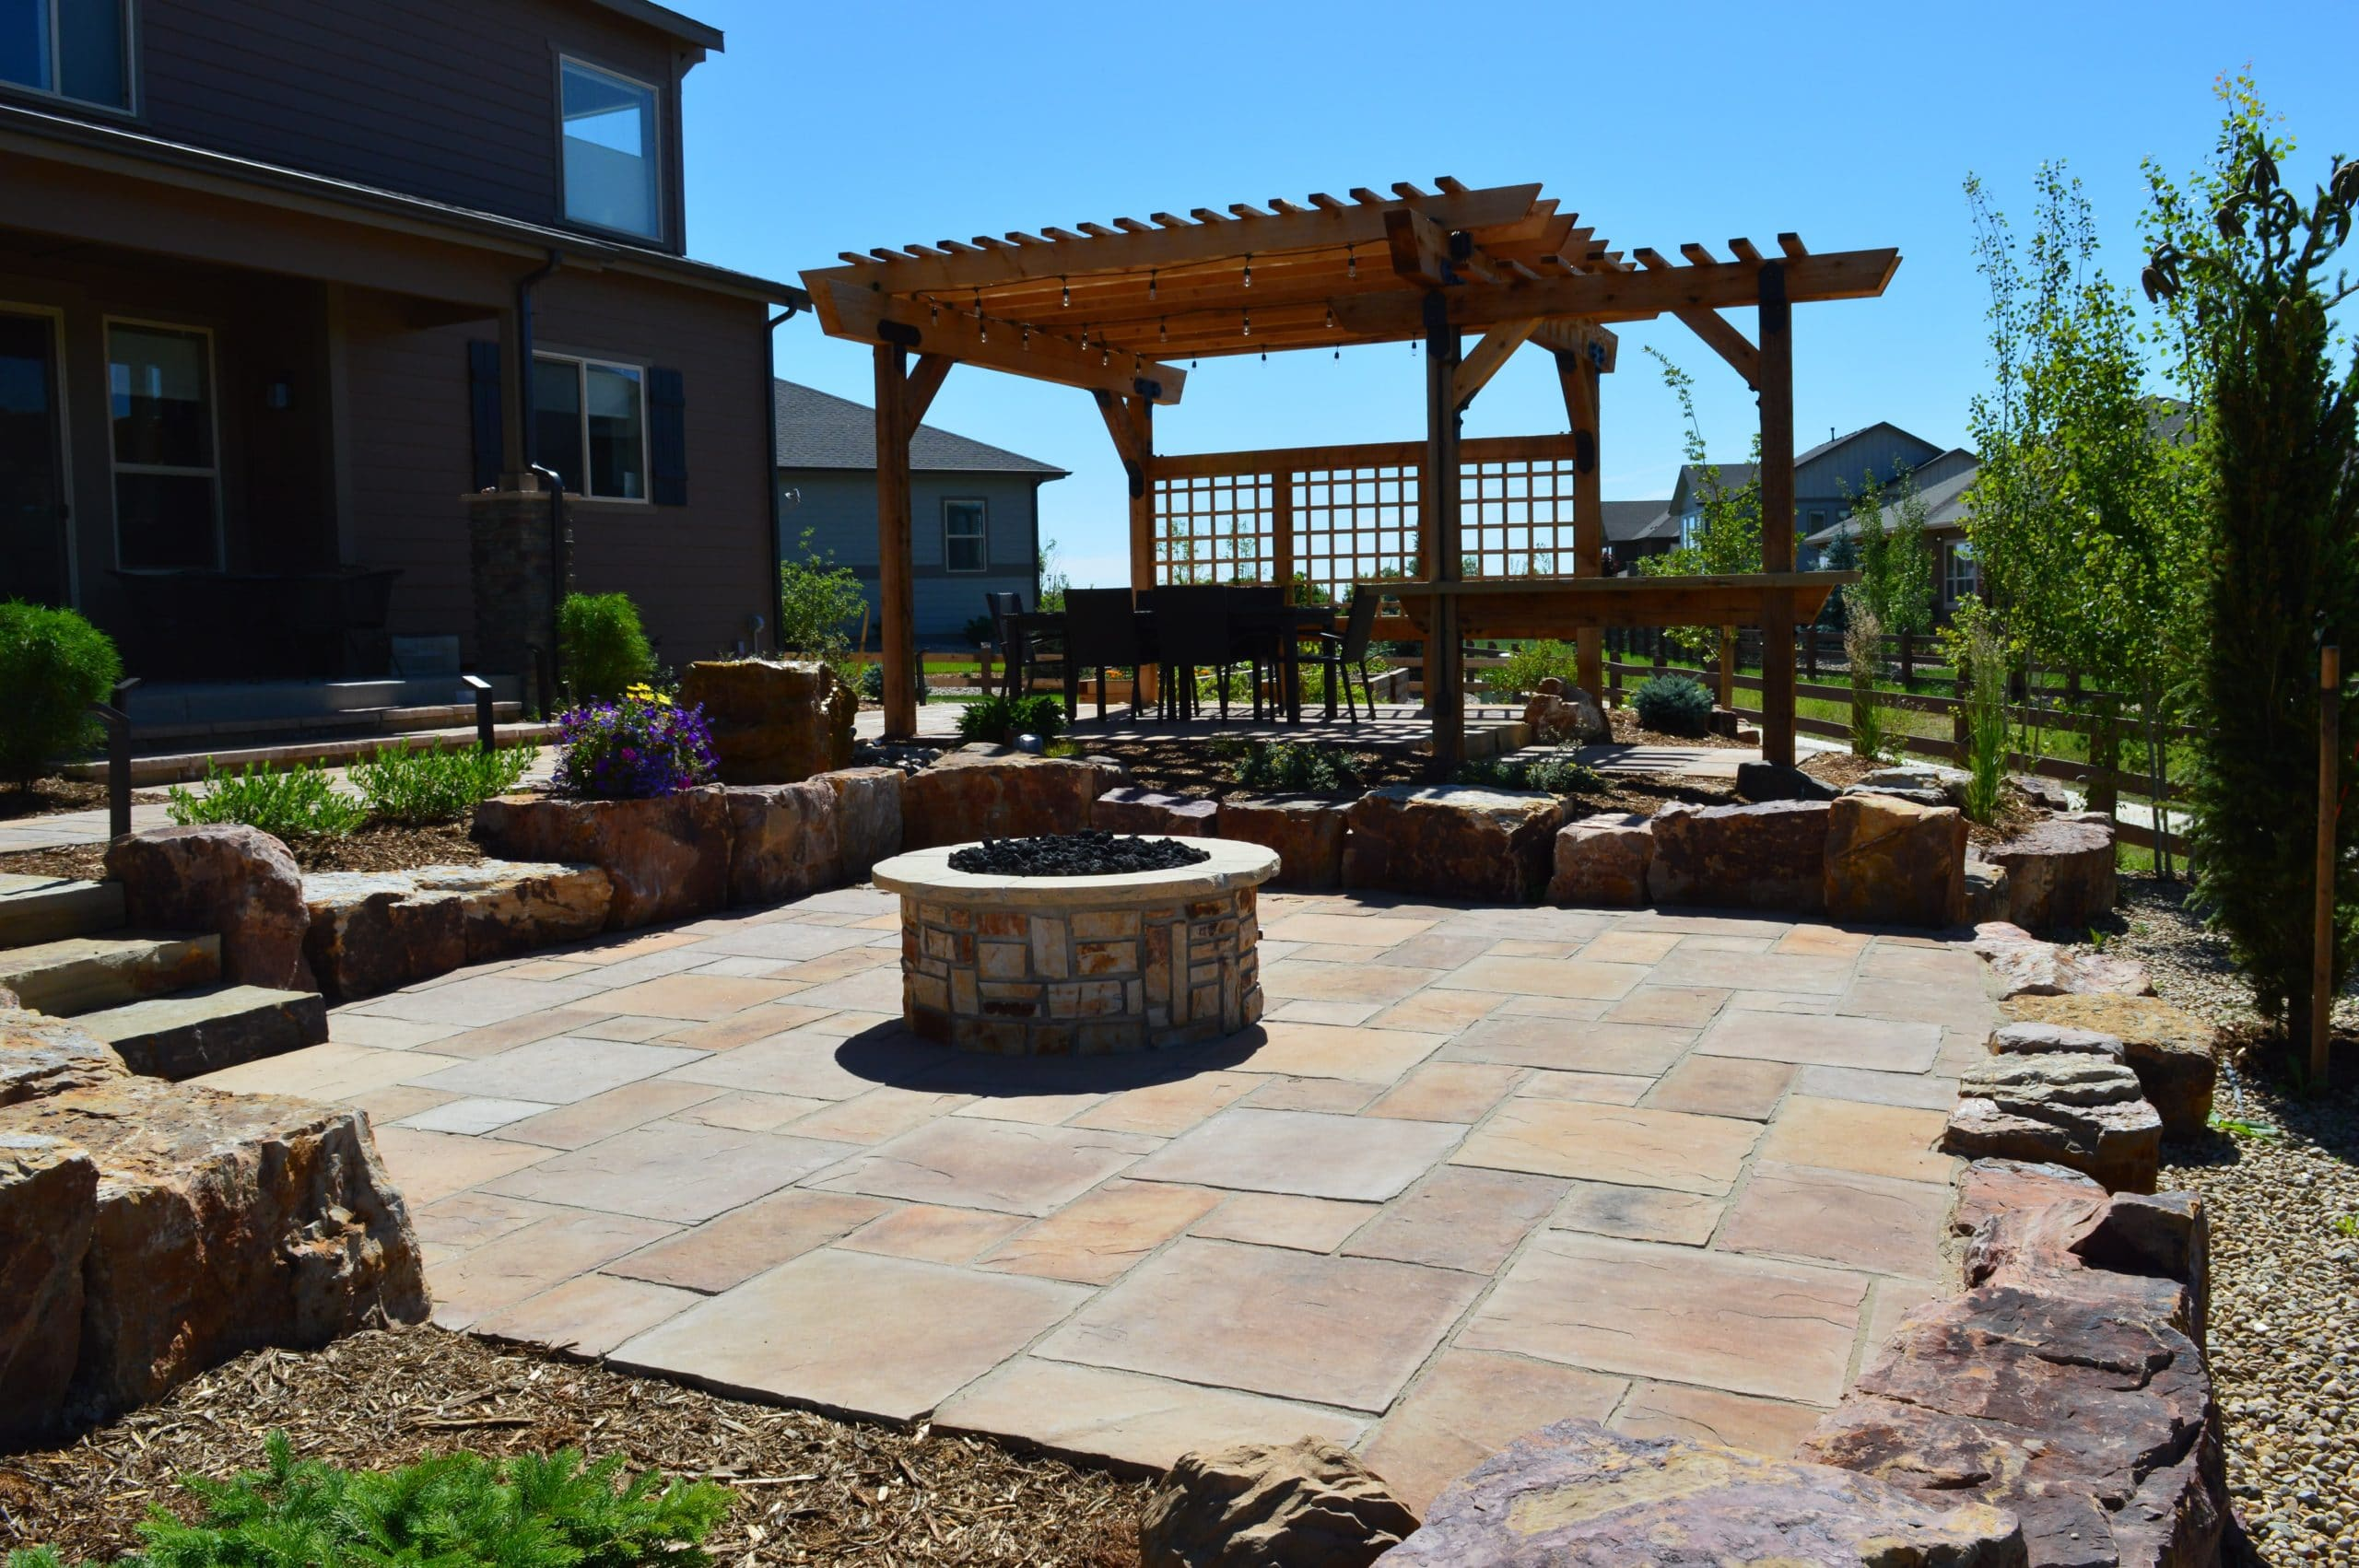 Stone patio with fire pit in the center. Pergola over top of a stone patio with seating underneath.